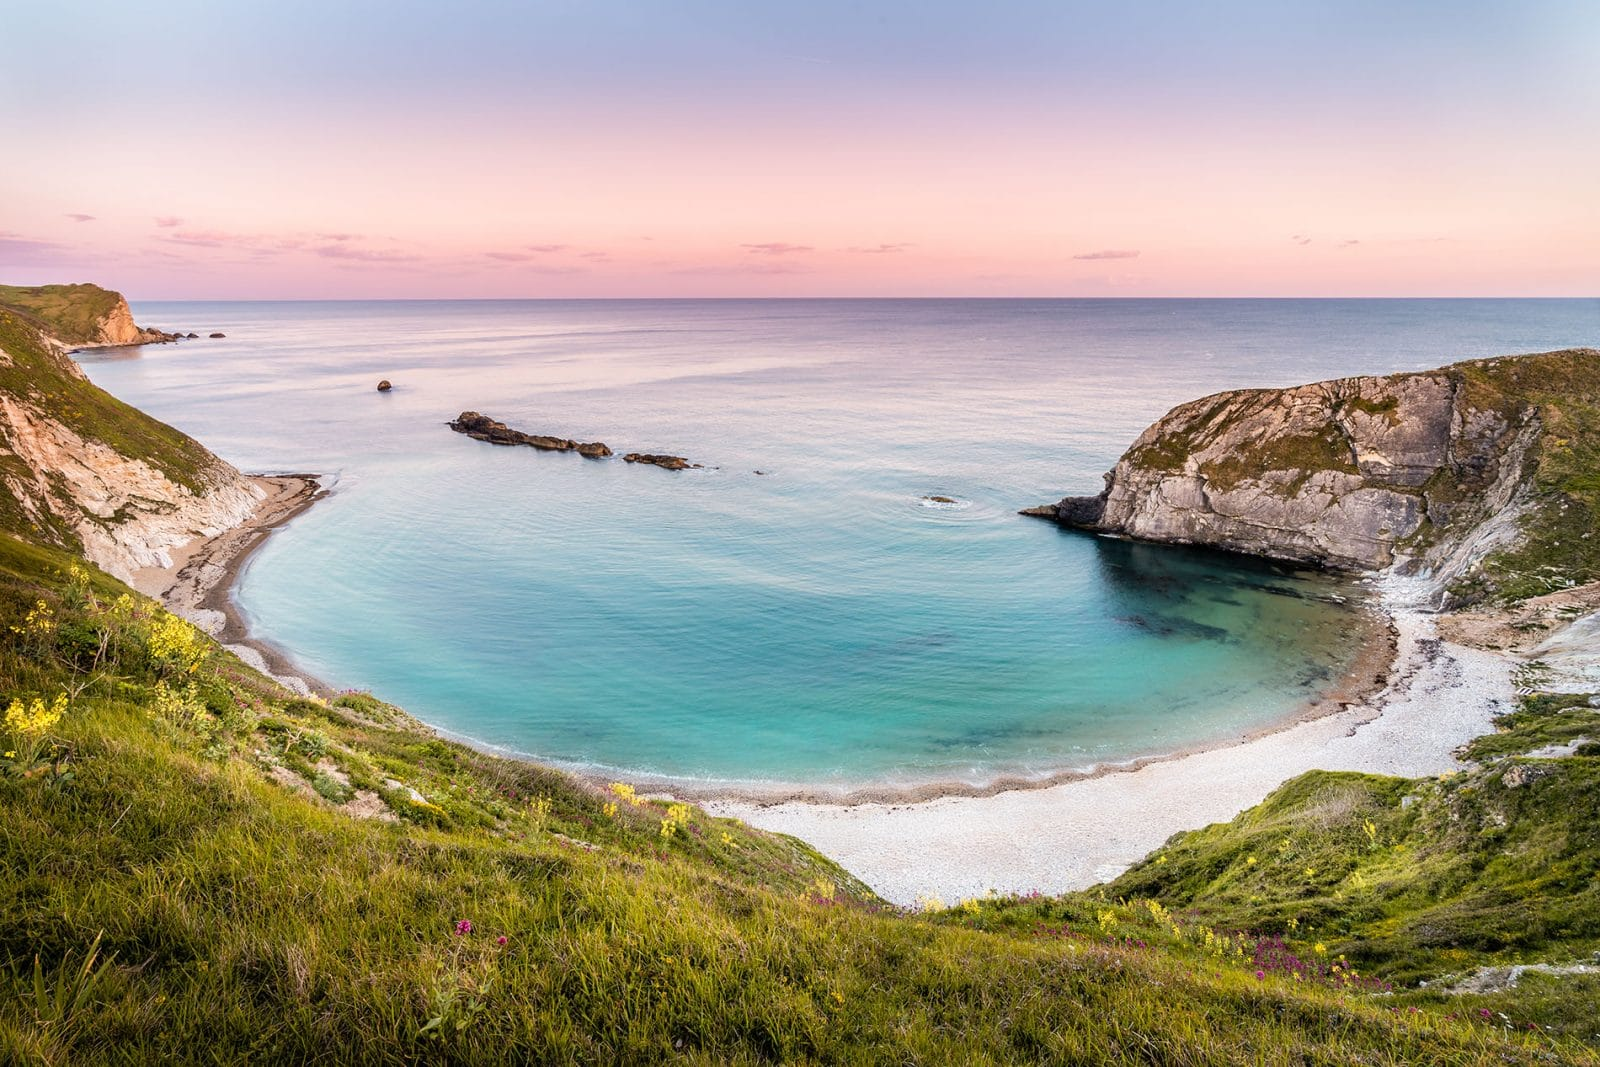 Lulworth cove Dorset sunset - Fine art print